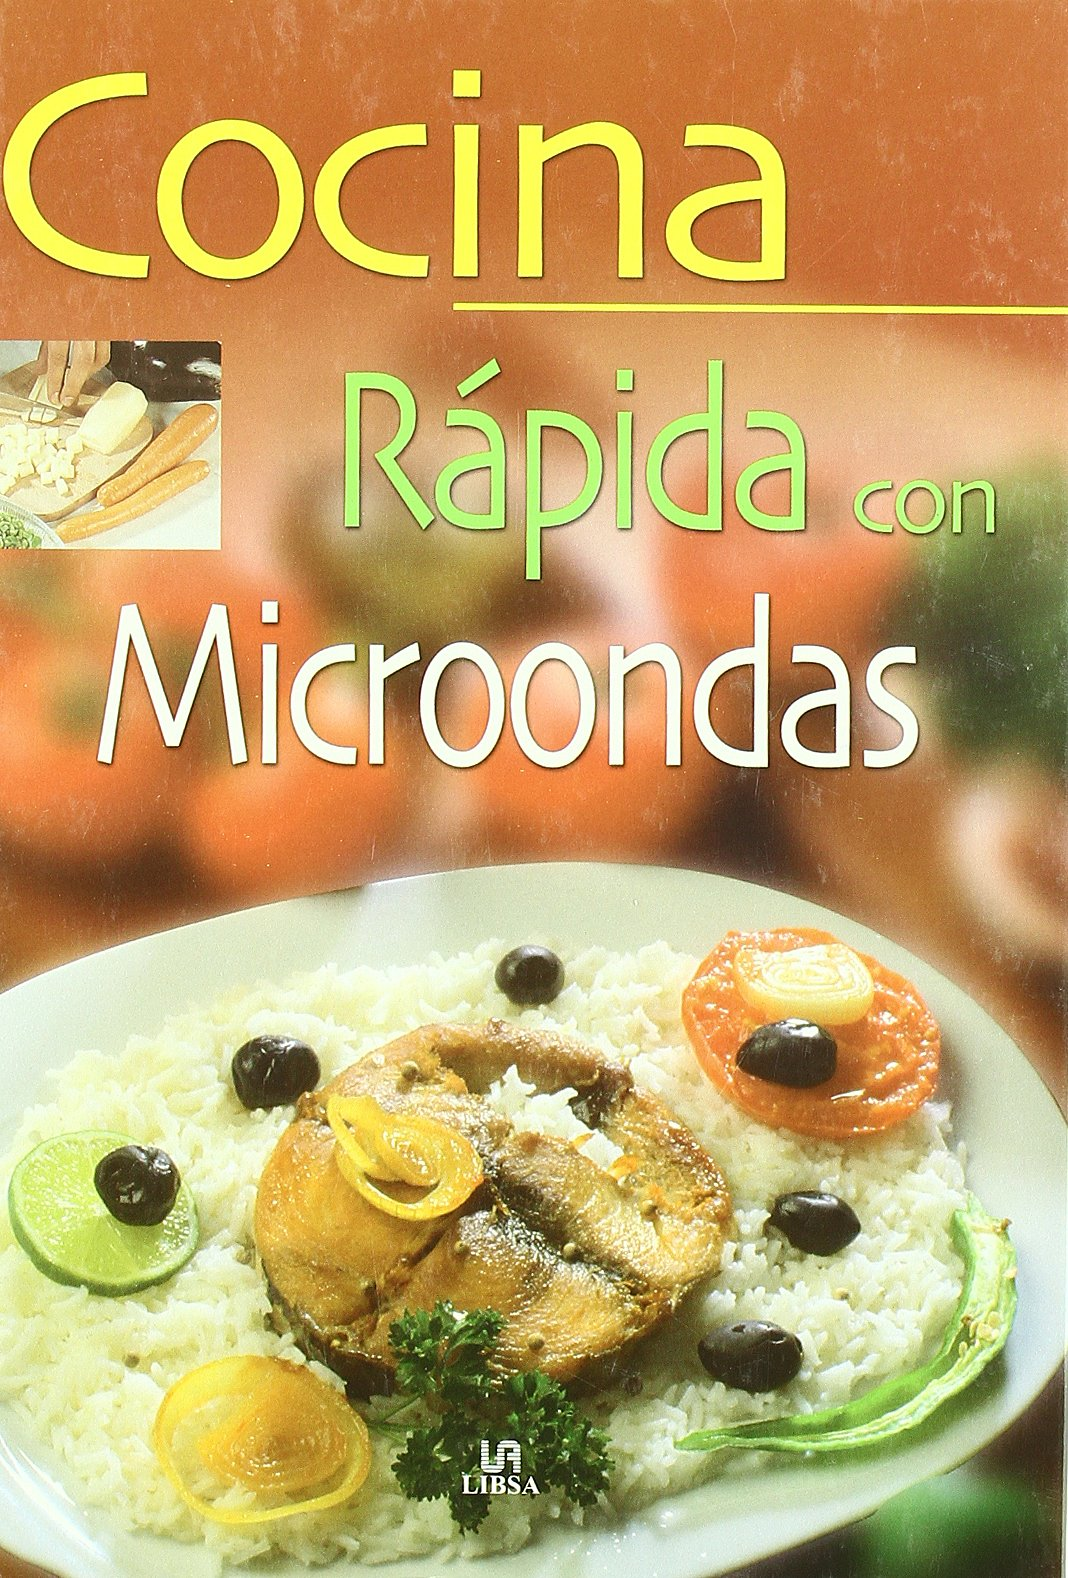 Cocina rapida con microondas / Quick Kitchen With Microwave ...